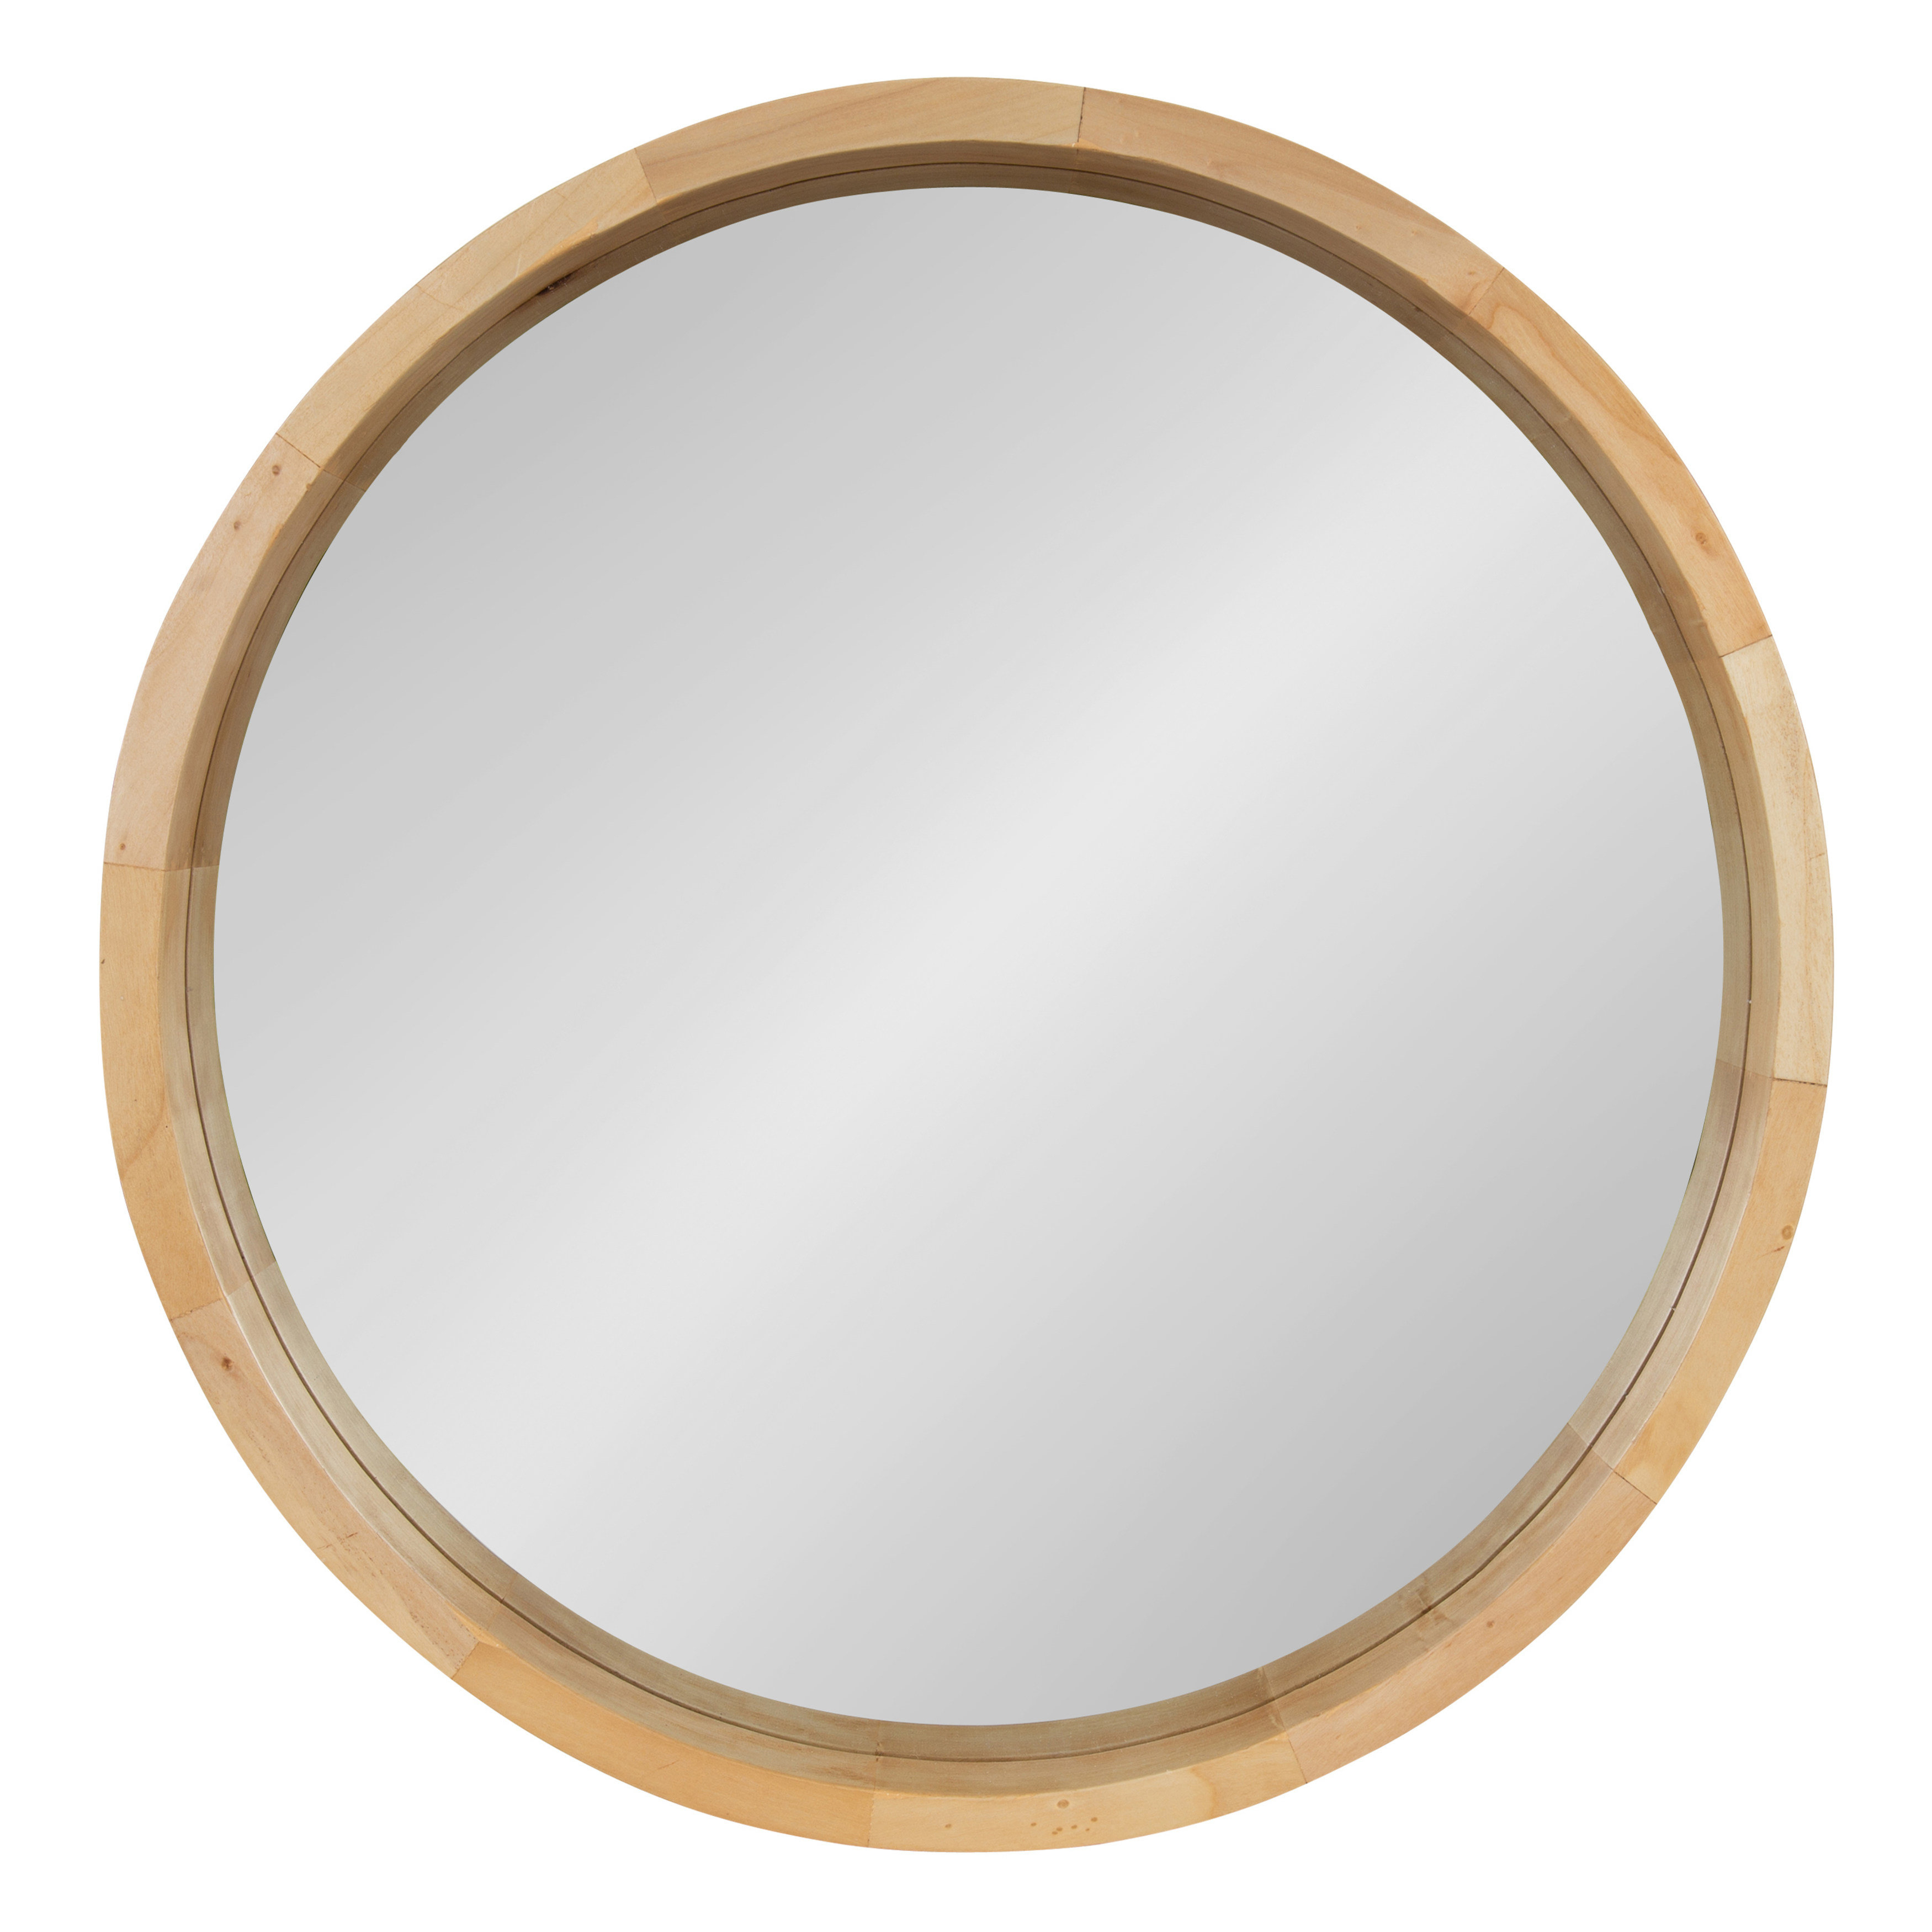 Accent & Bathroom & Vanity Mirrors You'll Love In 2019 | Wayfair Intended For Menachem Modern & Contemporary Accent Mirrors (View 16 of 20)